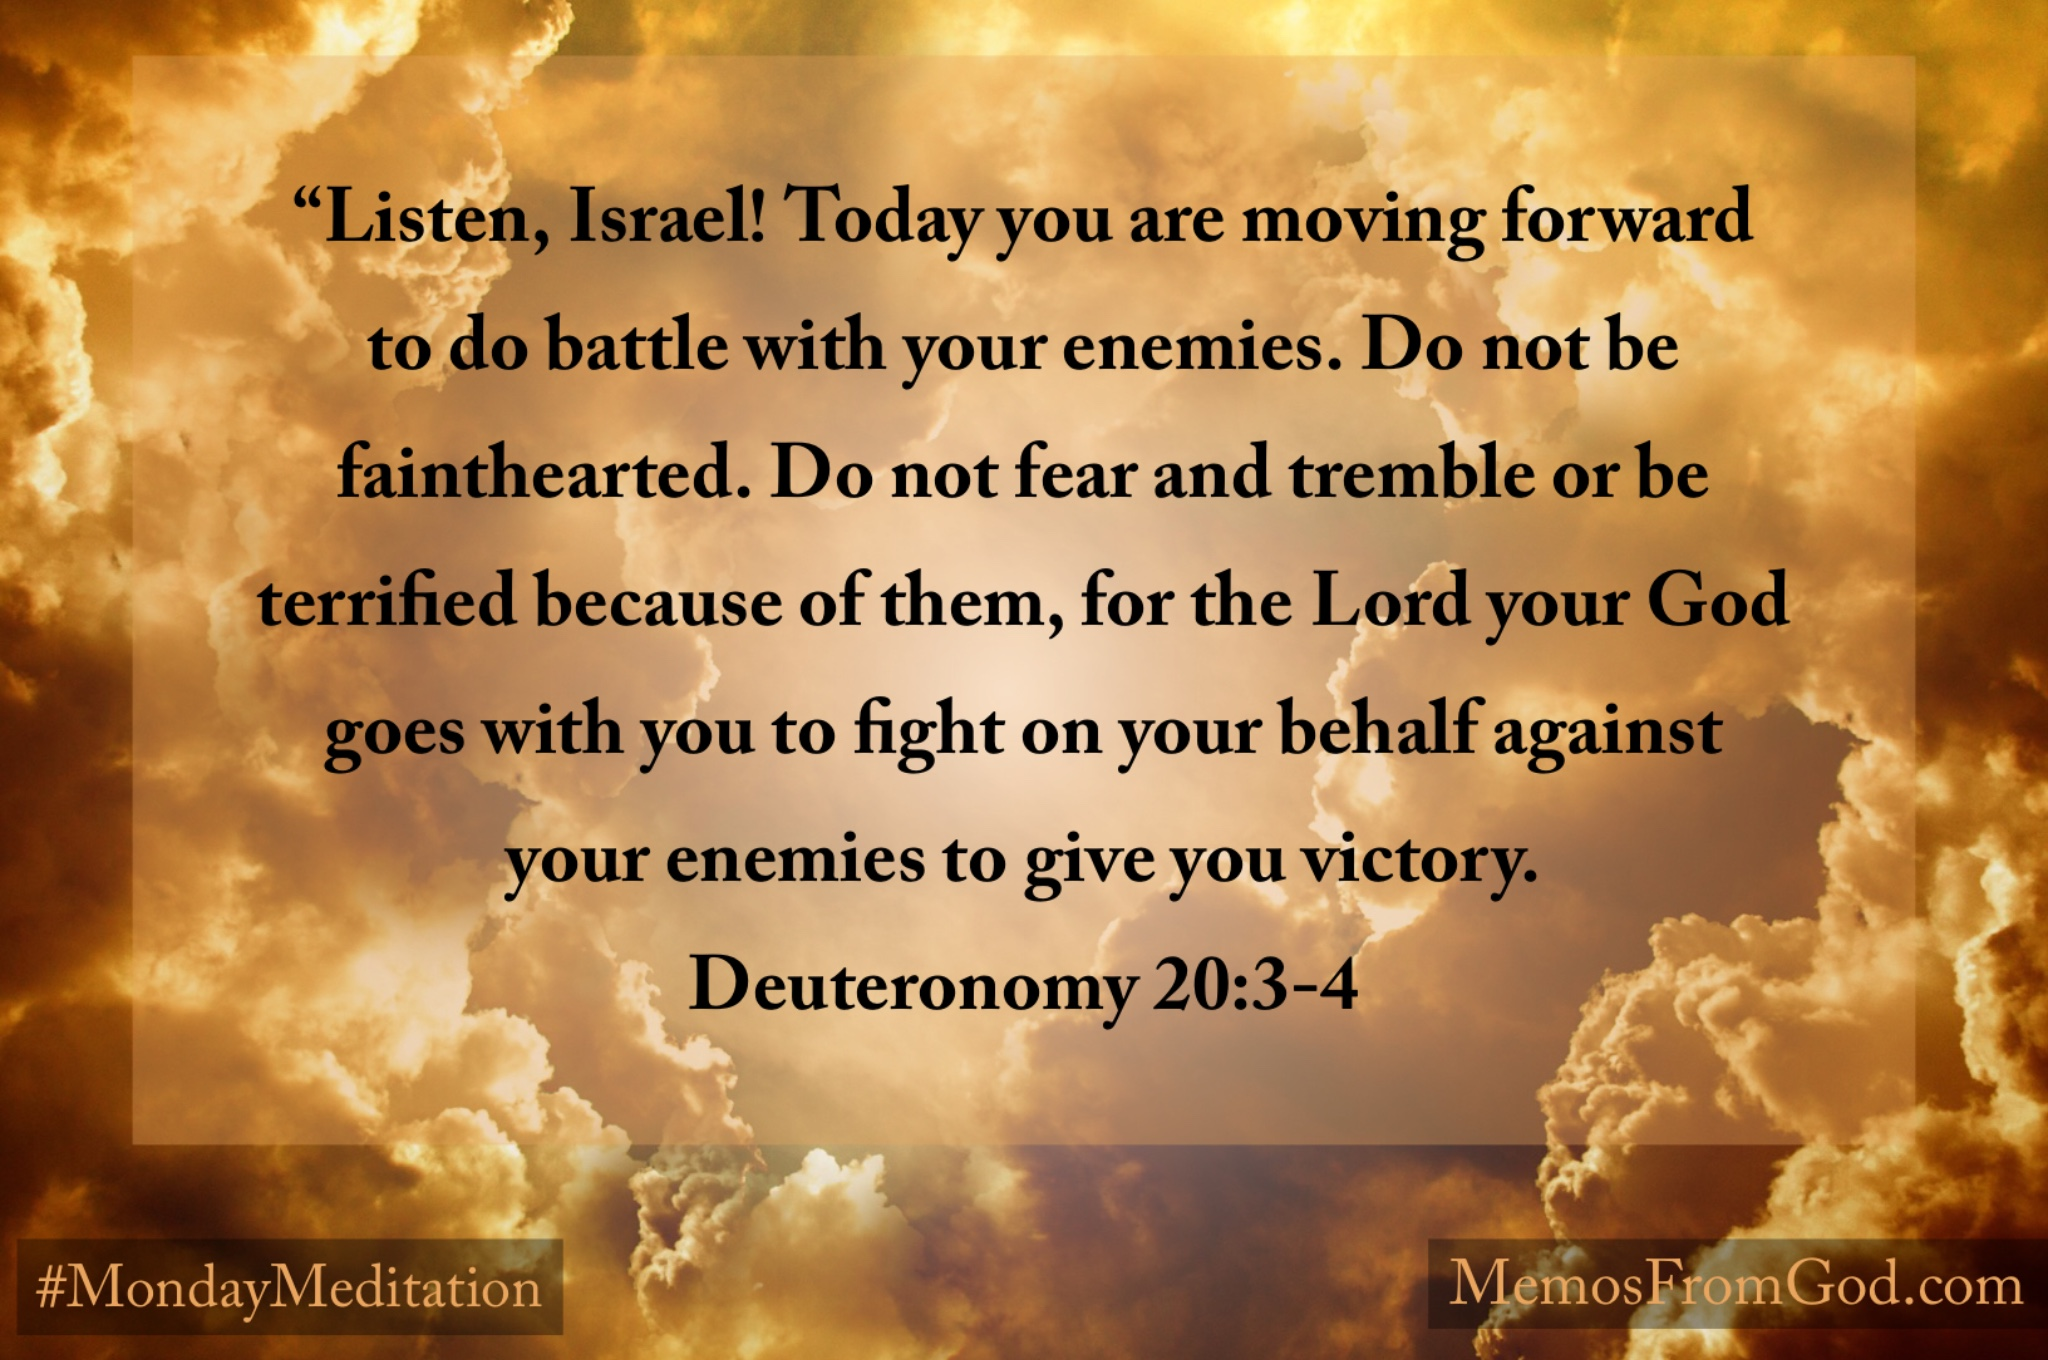 """Listen, Israel! Today you are moving forward to do battle with your enemies. Do not be fainthearted. Do not fear and tremble or be terrified because of them, for the Lord your God goes with you to fight on your behalf against your enemies to give you victory. Deuteronomy 20:3-4"